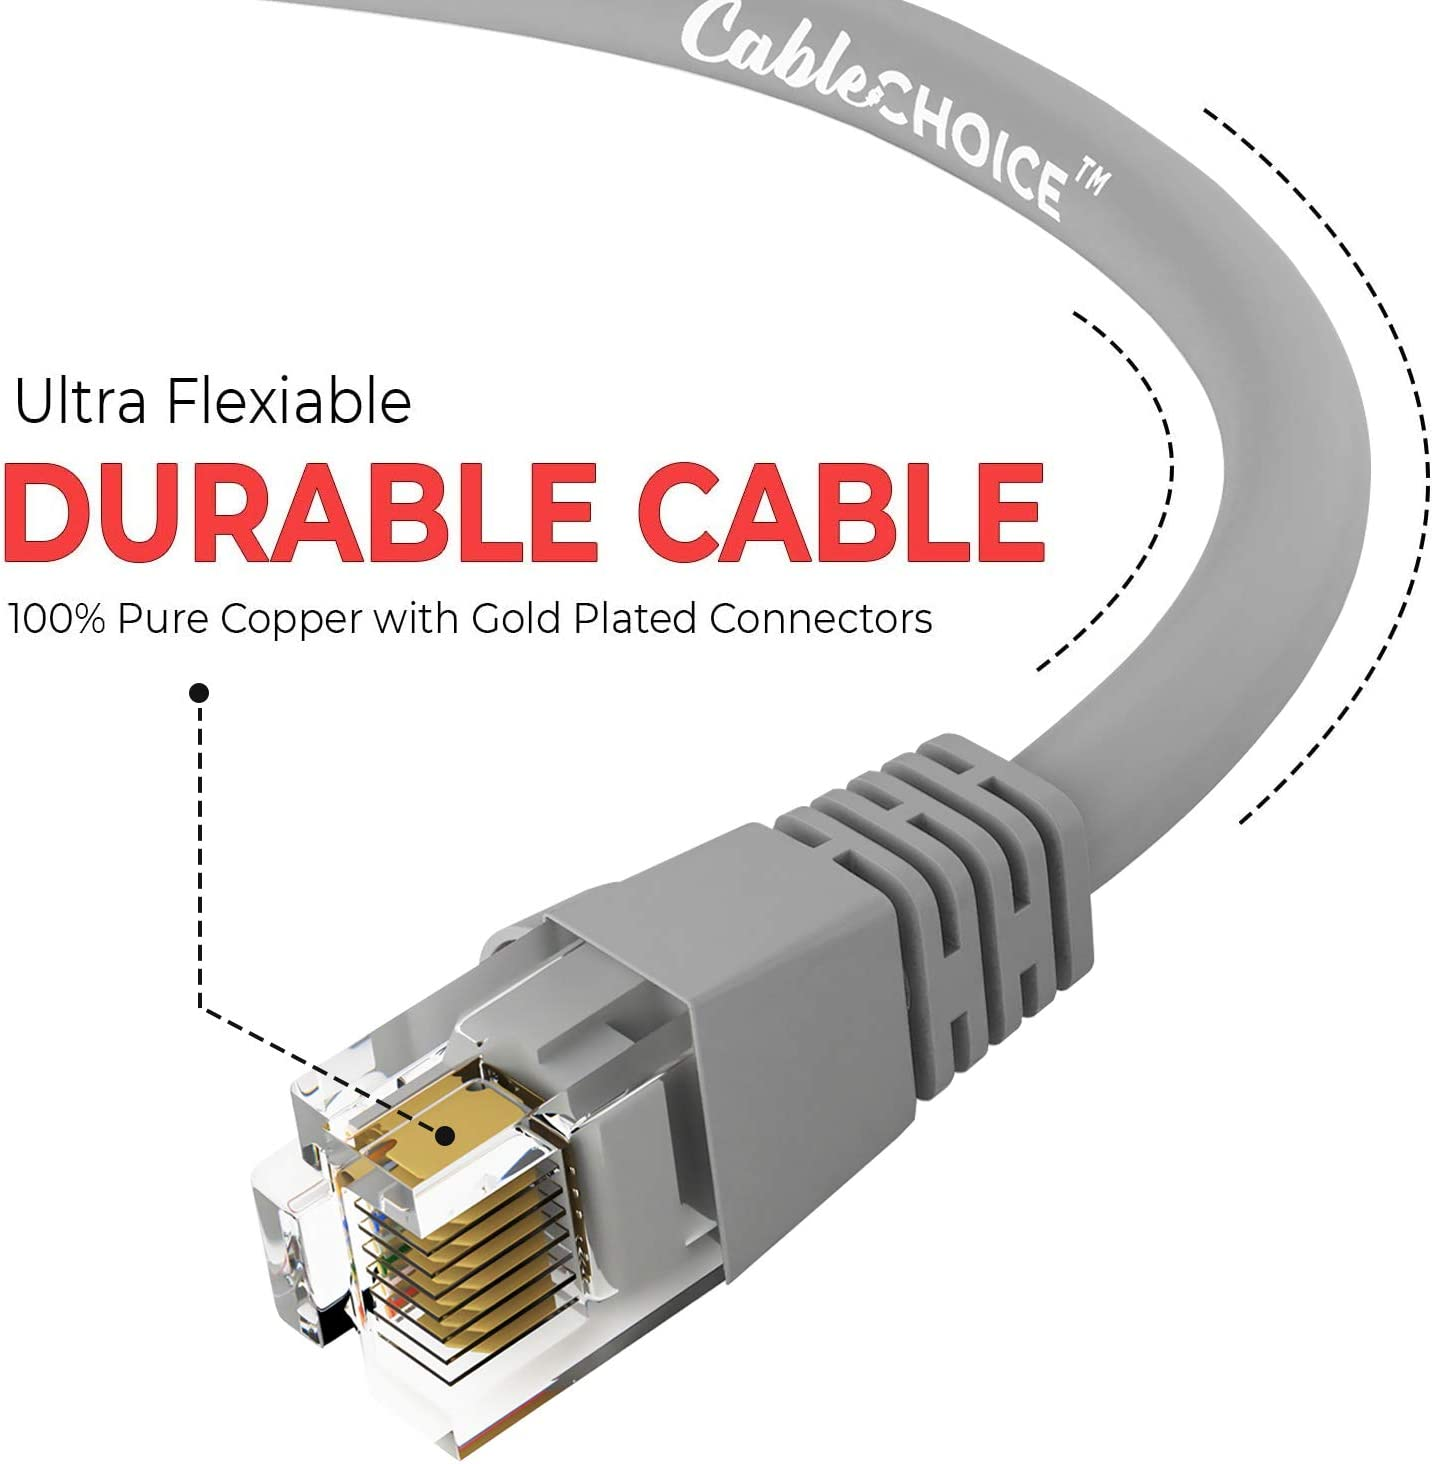 1Gigabit//Sec High Speed LAN Internet//Patch Cable 5 Feet - Gray 24AWG Network Cable with Gold Plated RJ45 Snagless//Molded//Booted Connector 350MHz CABLECHOICE Cat5e Ethernet Cable